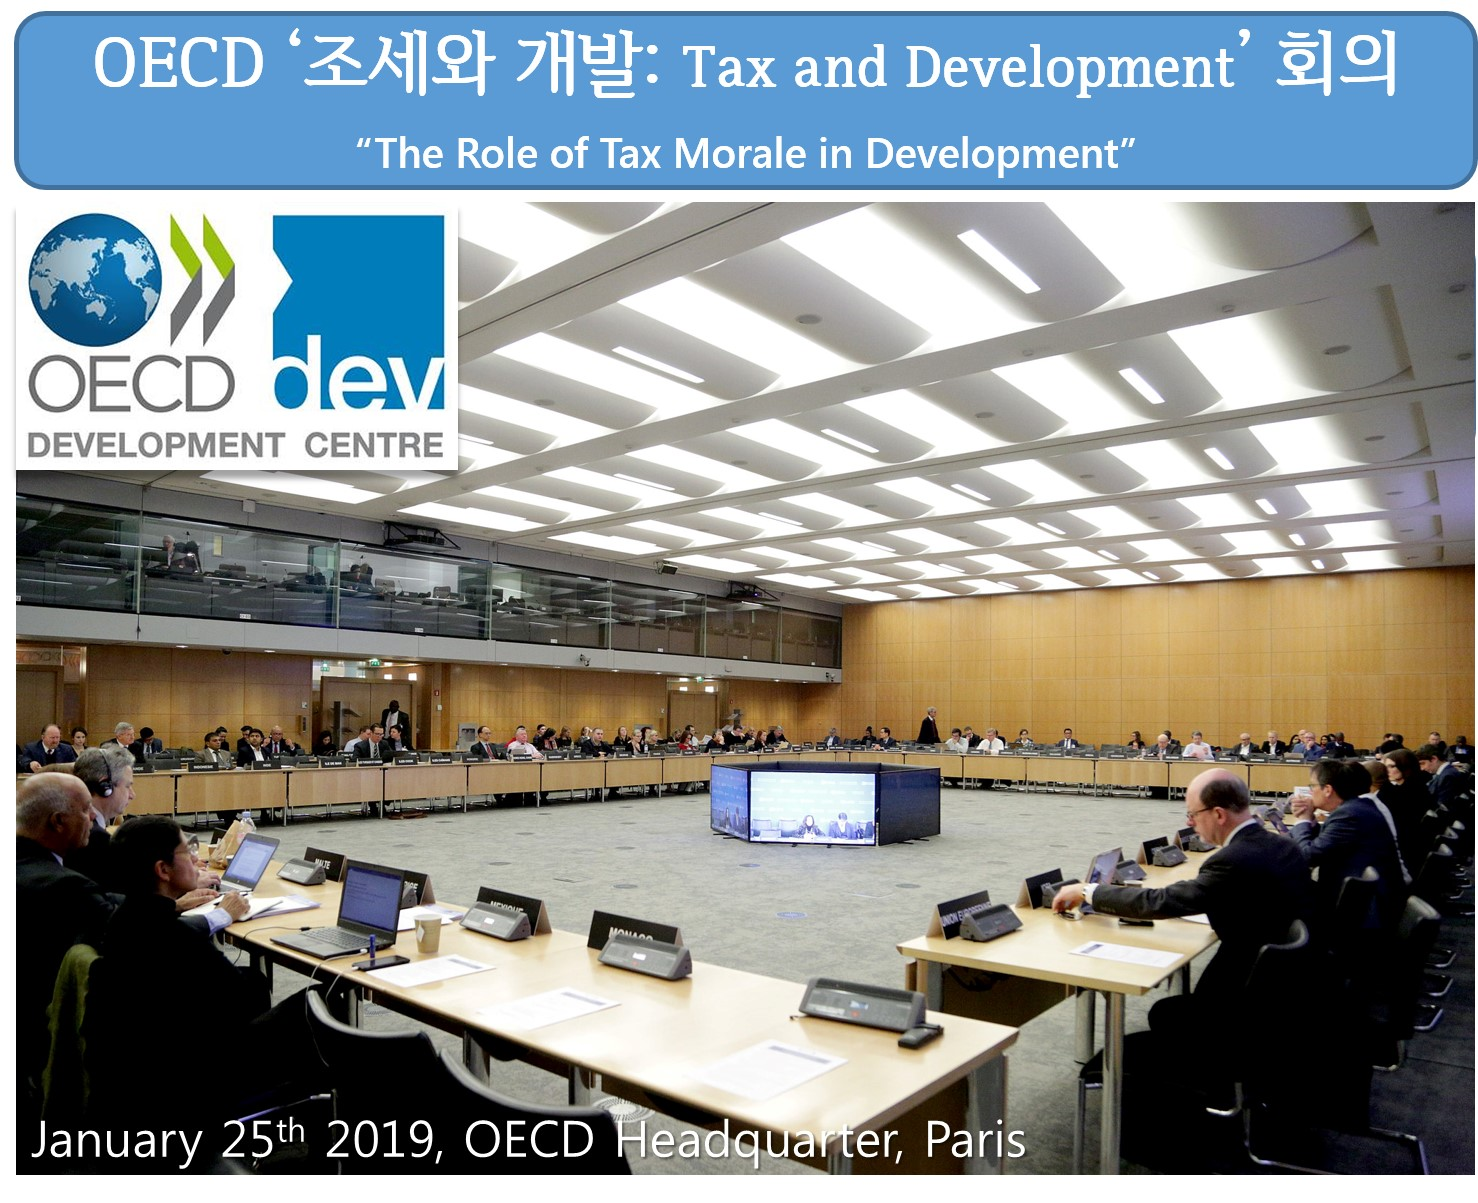 OECD Tax and Development 2019.jpg